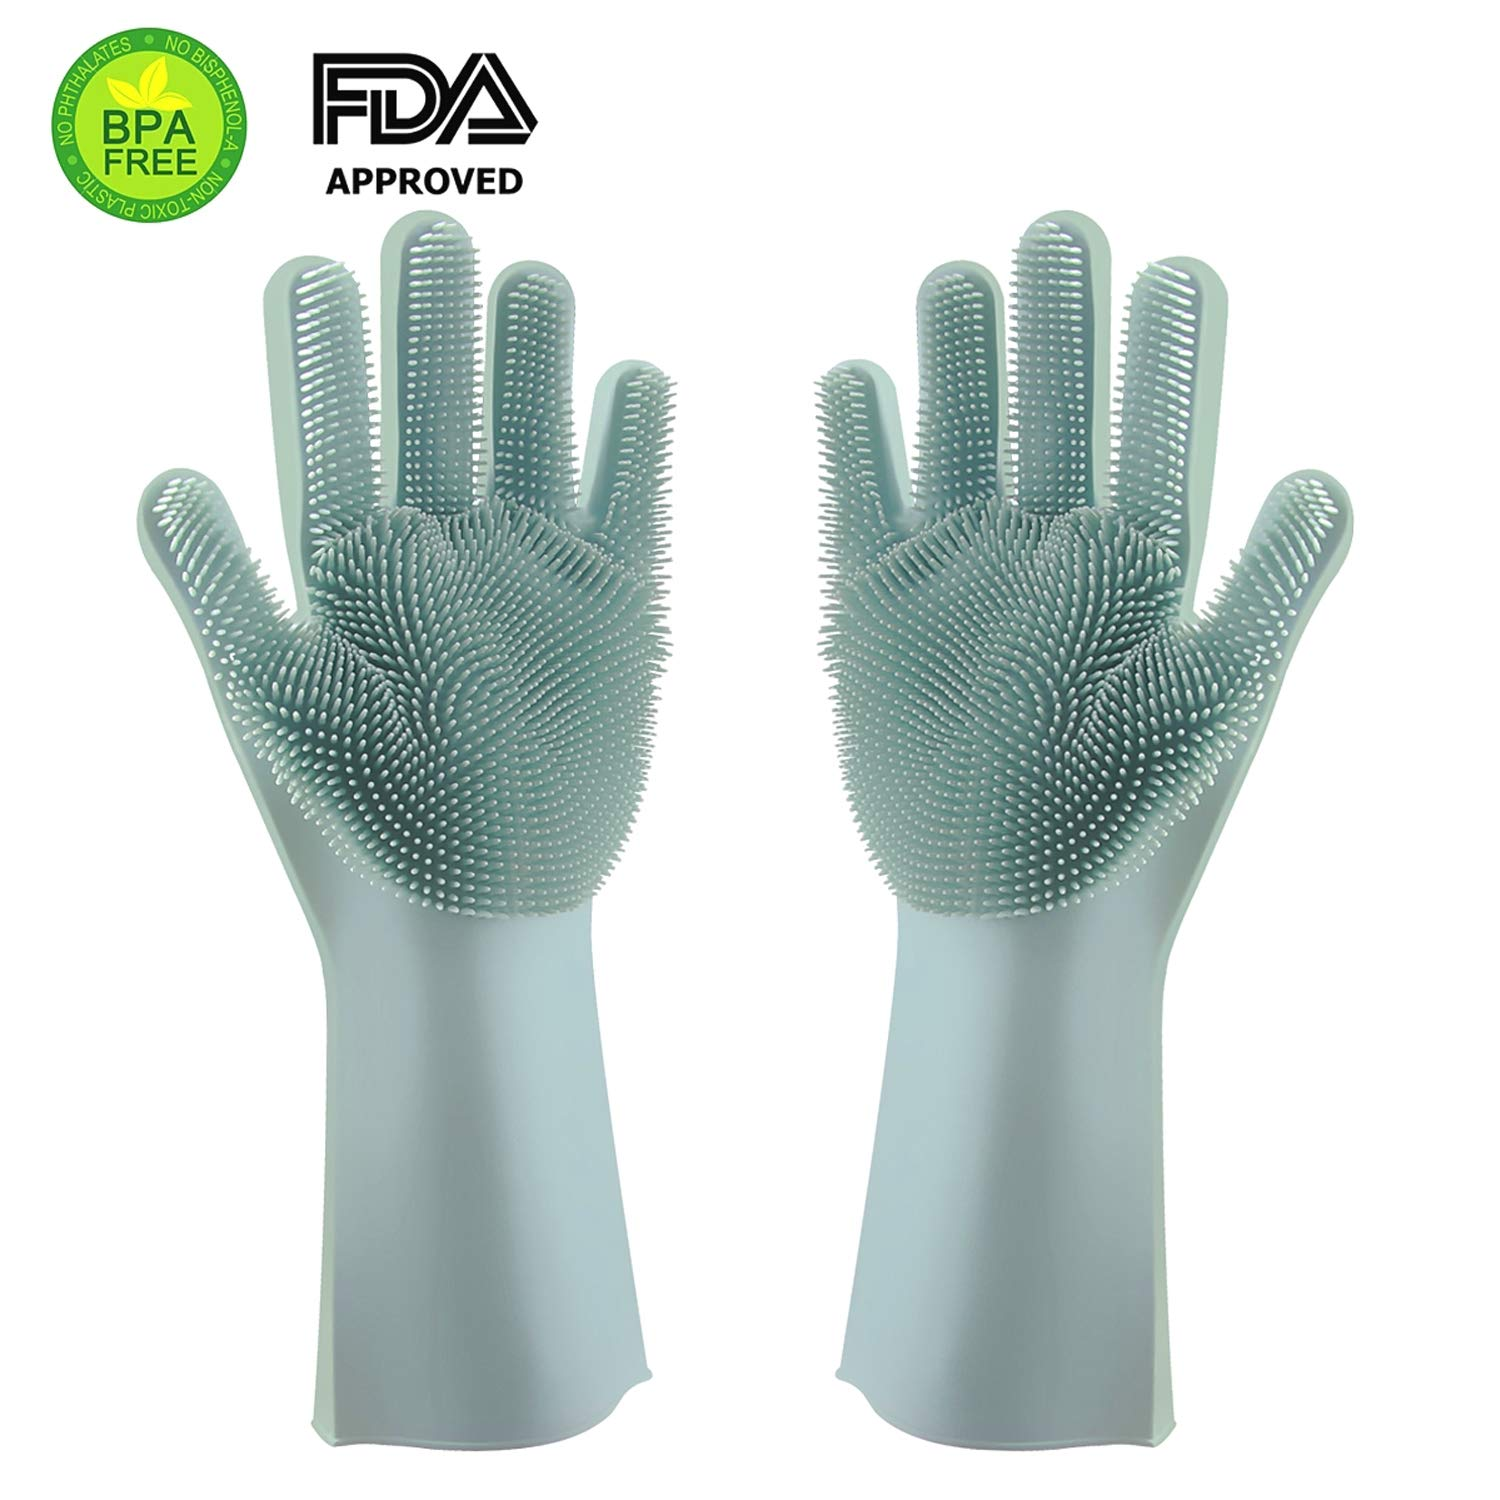 Silicone Cooking & BBQ Gloves ★ Heat Resistant, Grilling Glove For Men and Women ★ Perfect For Cooking, Baking & Barbecuing ★ Use As Oven Mitts, Pot Holder Or Grips ★ Great Gift Idea